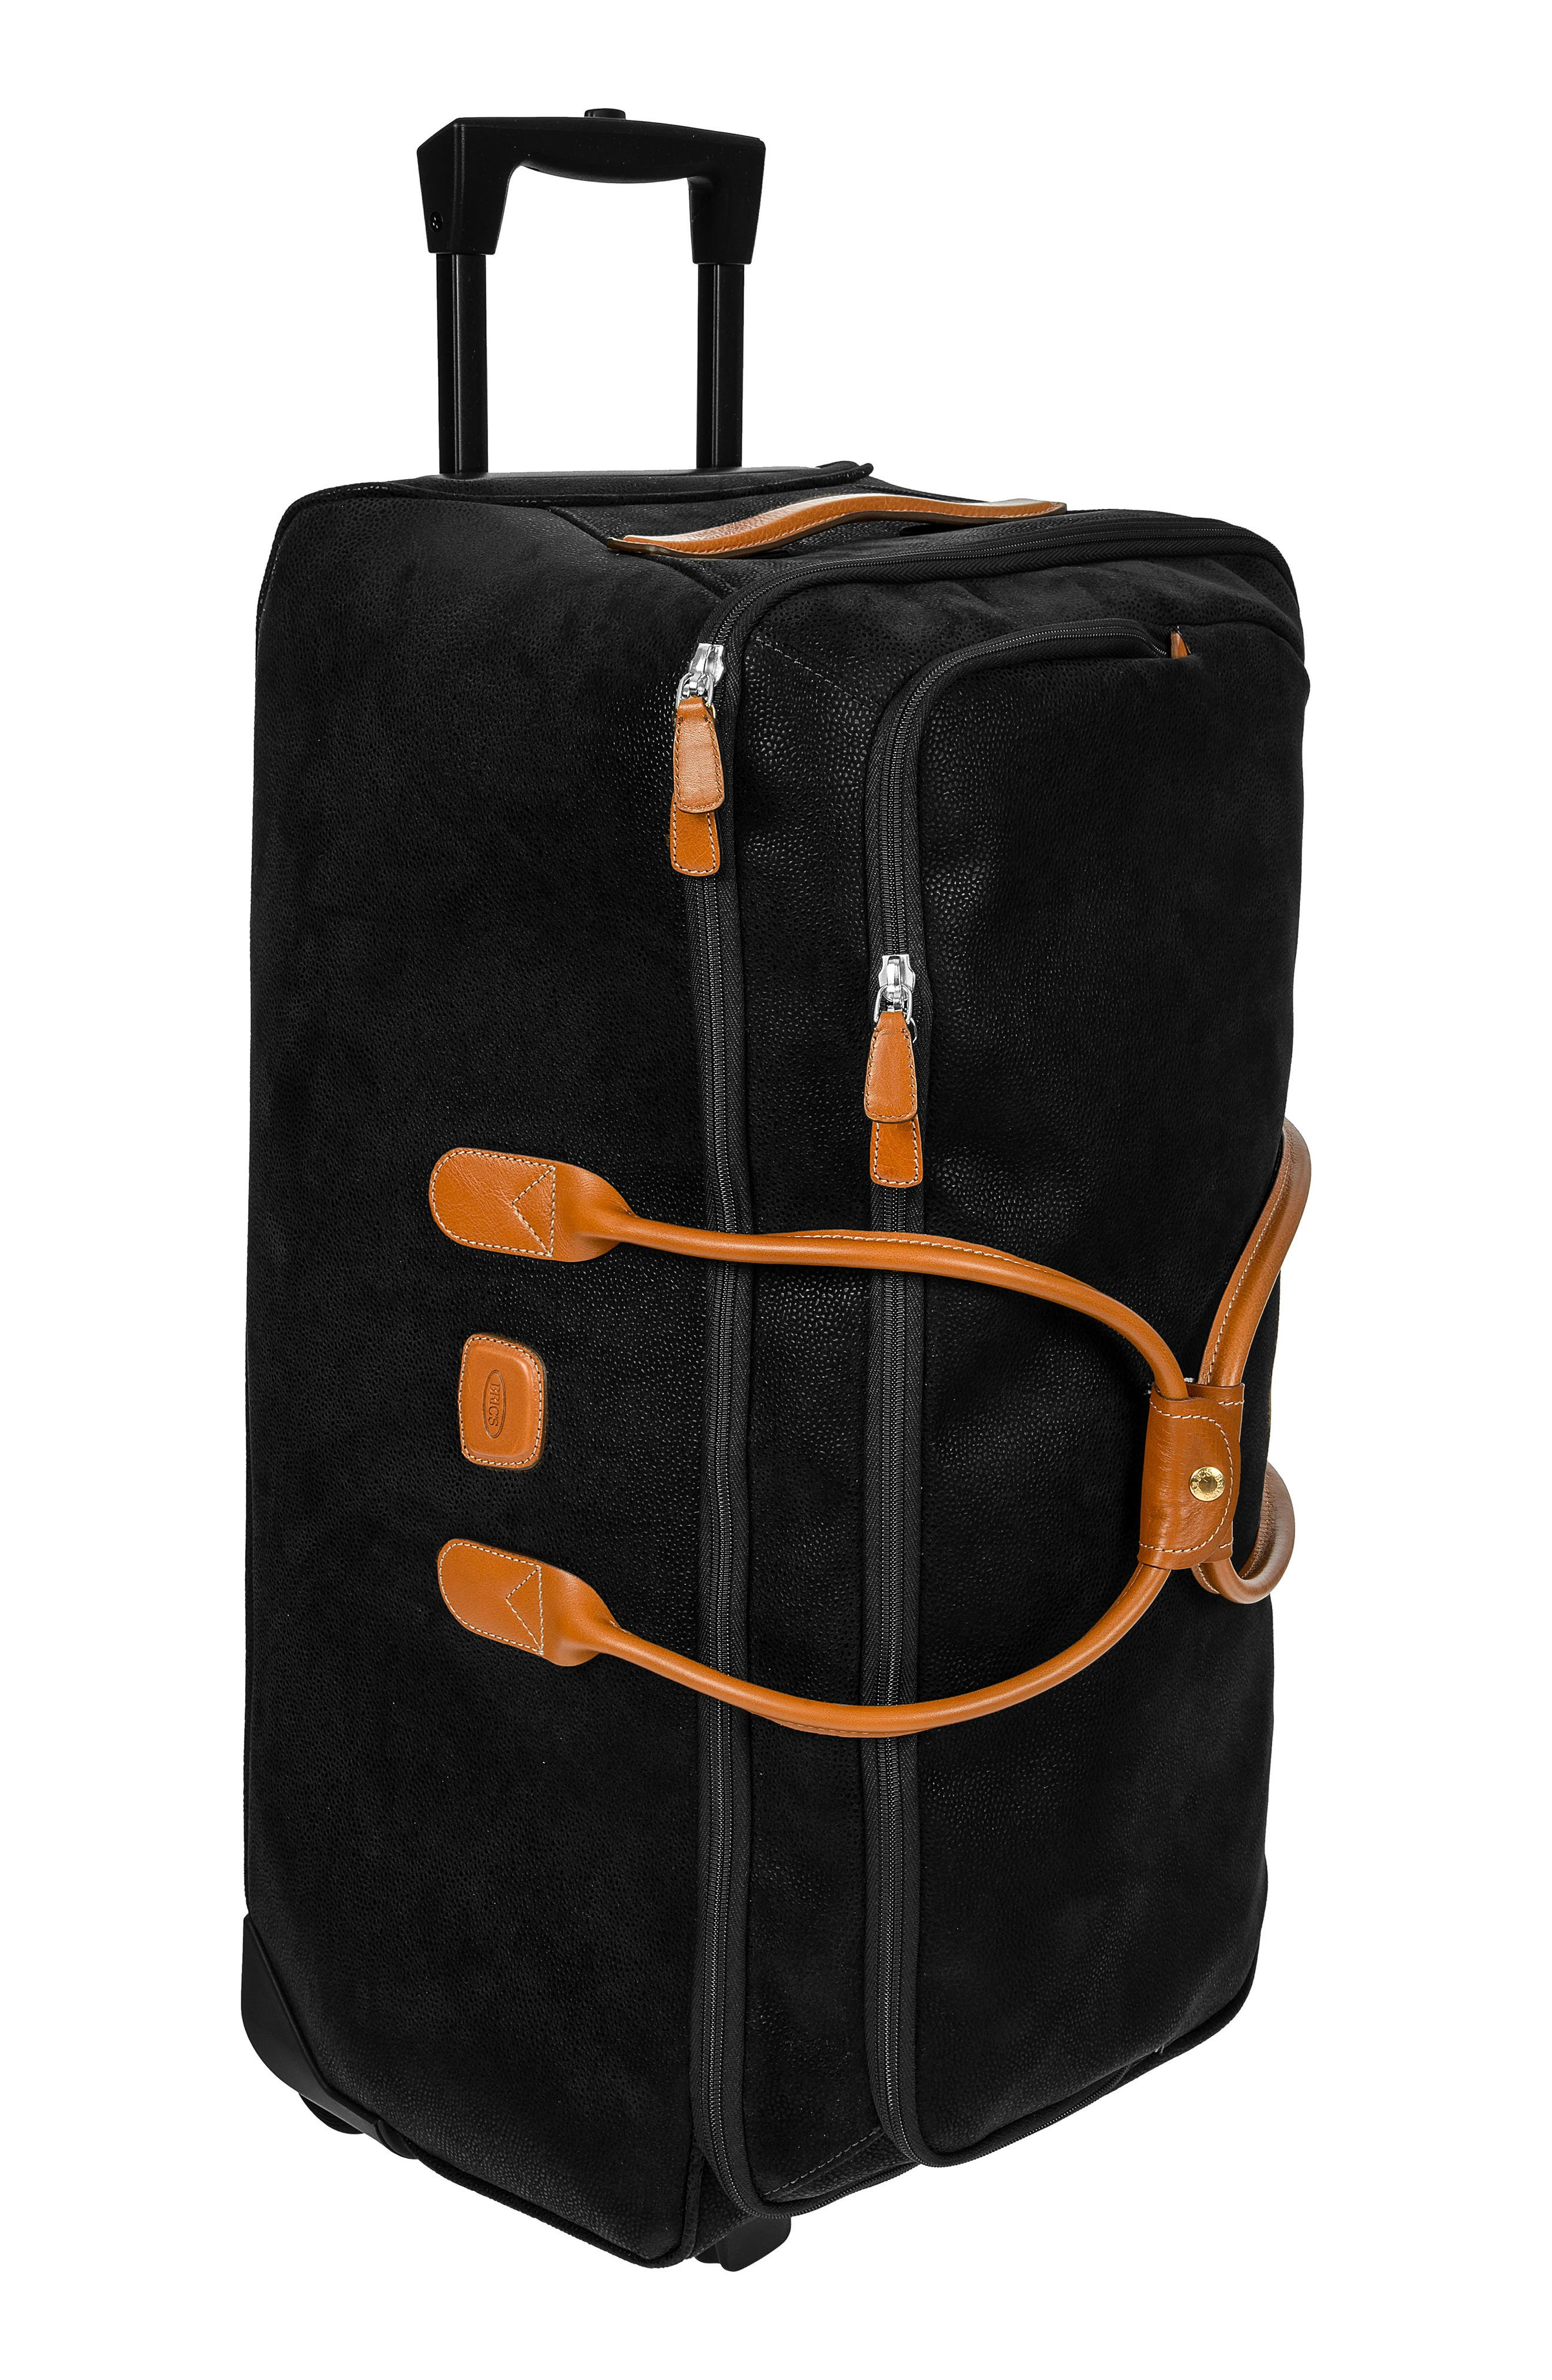 Main Image - Bric's Life Collection 28-Inch Rolling Duffel Bag